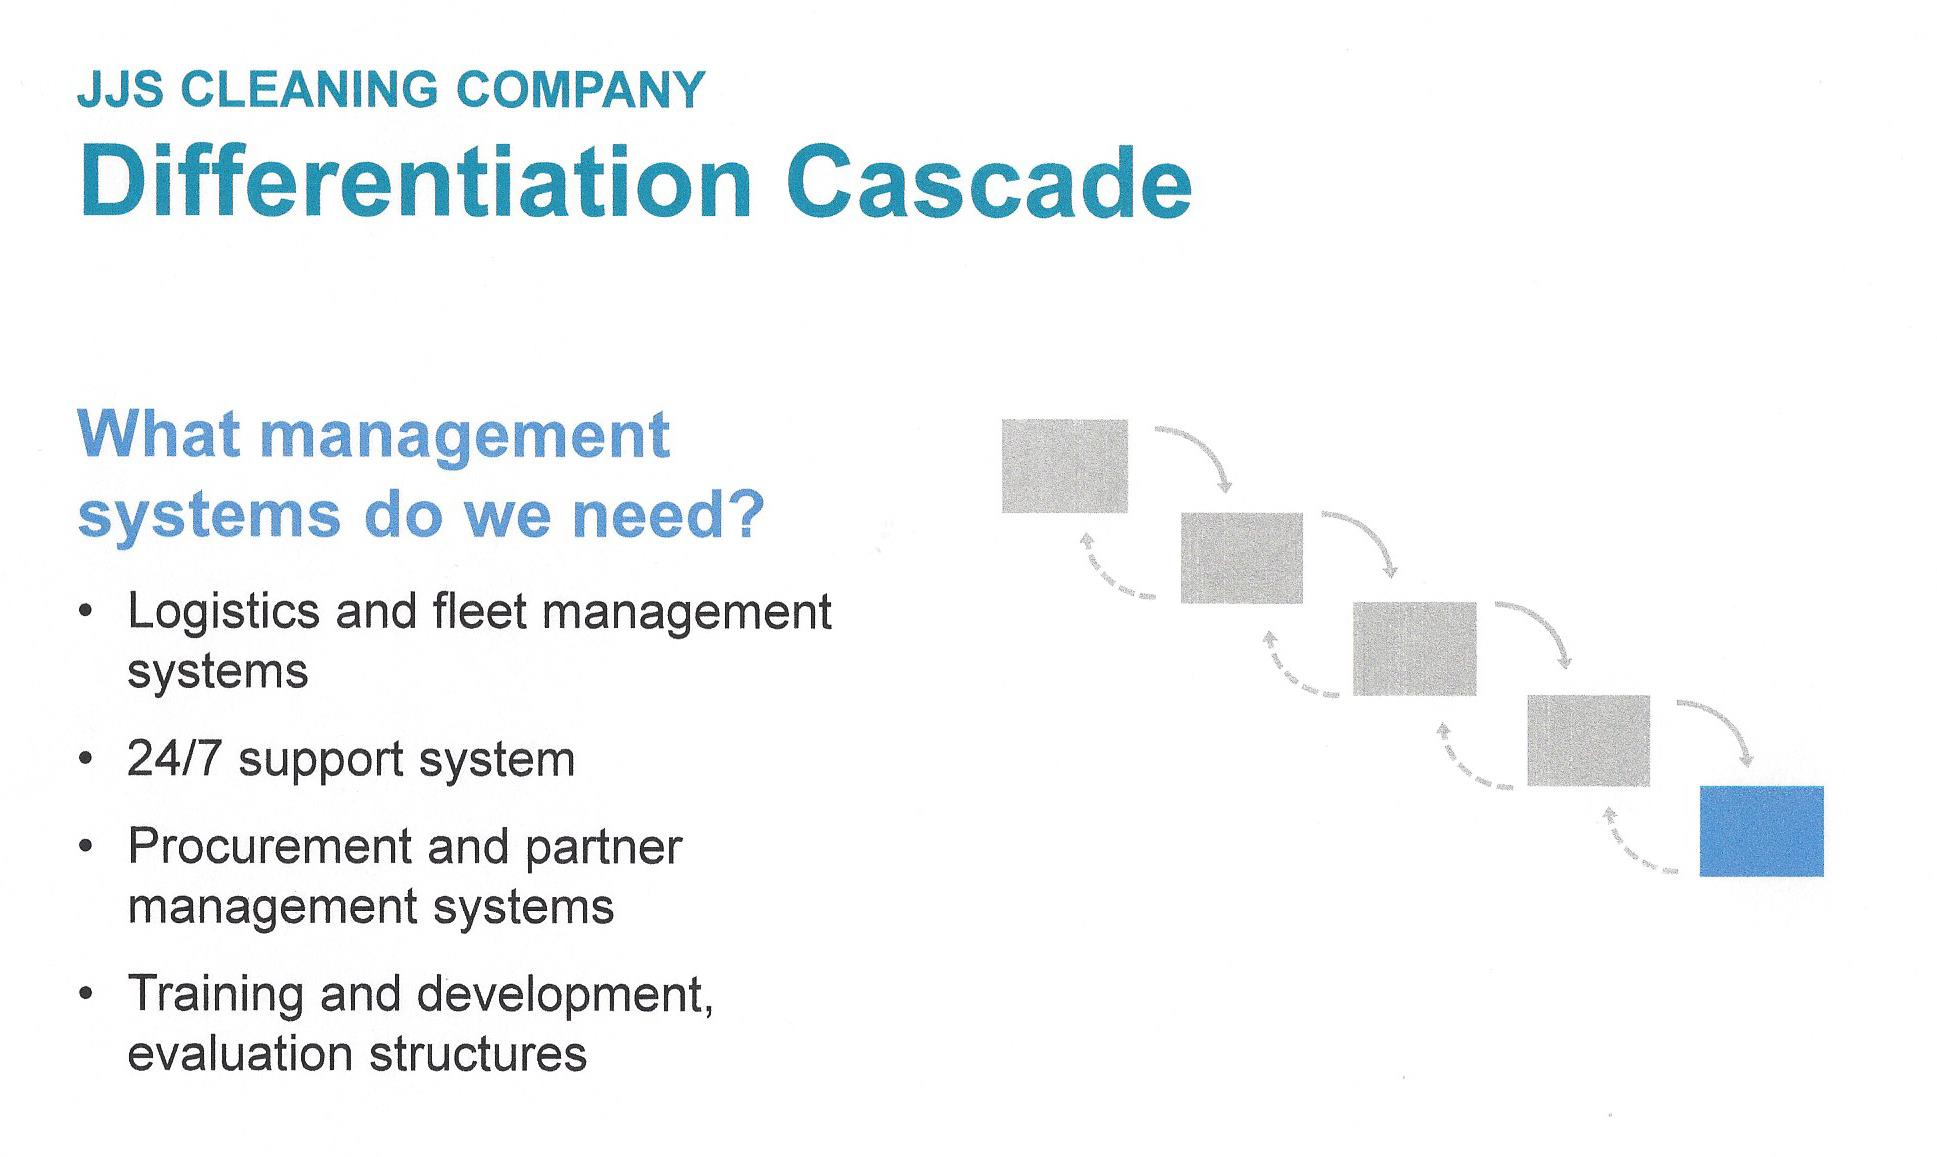 Play to Win - Differentiation Cascade - Management Systems